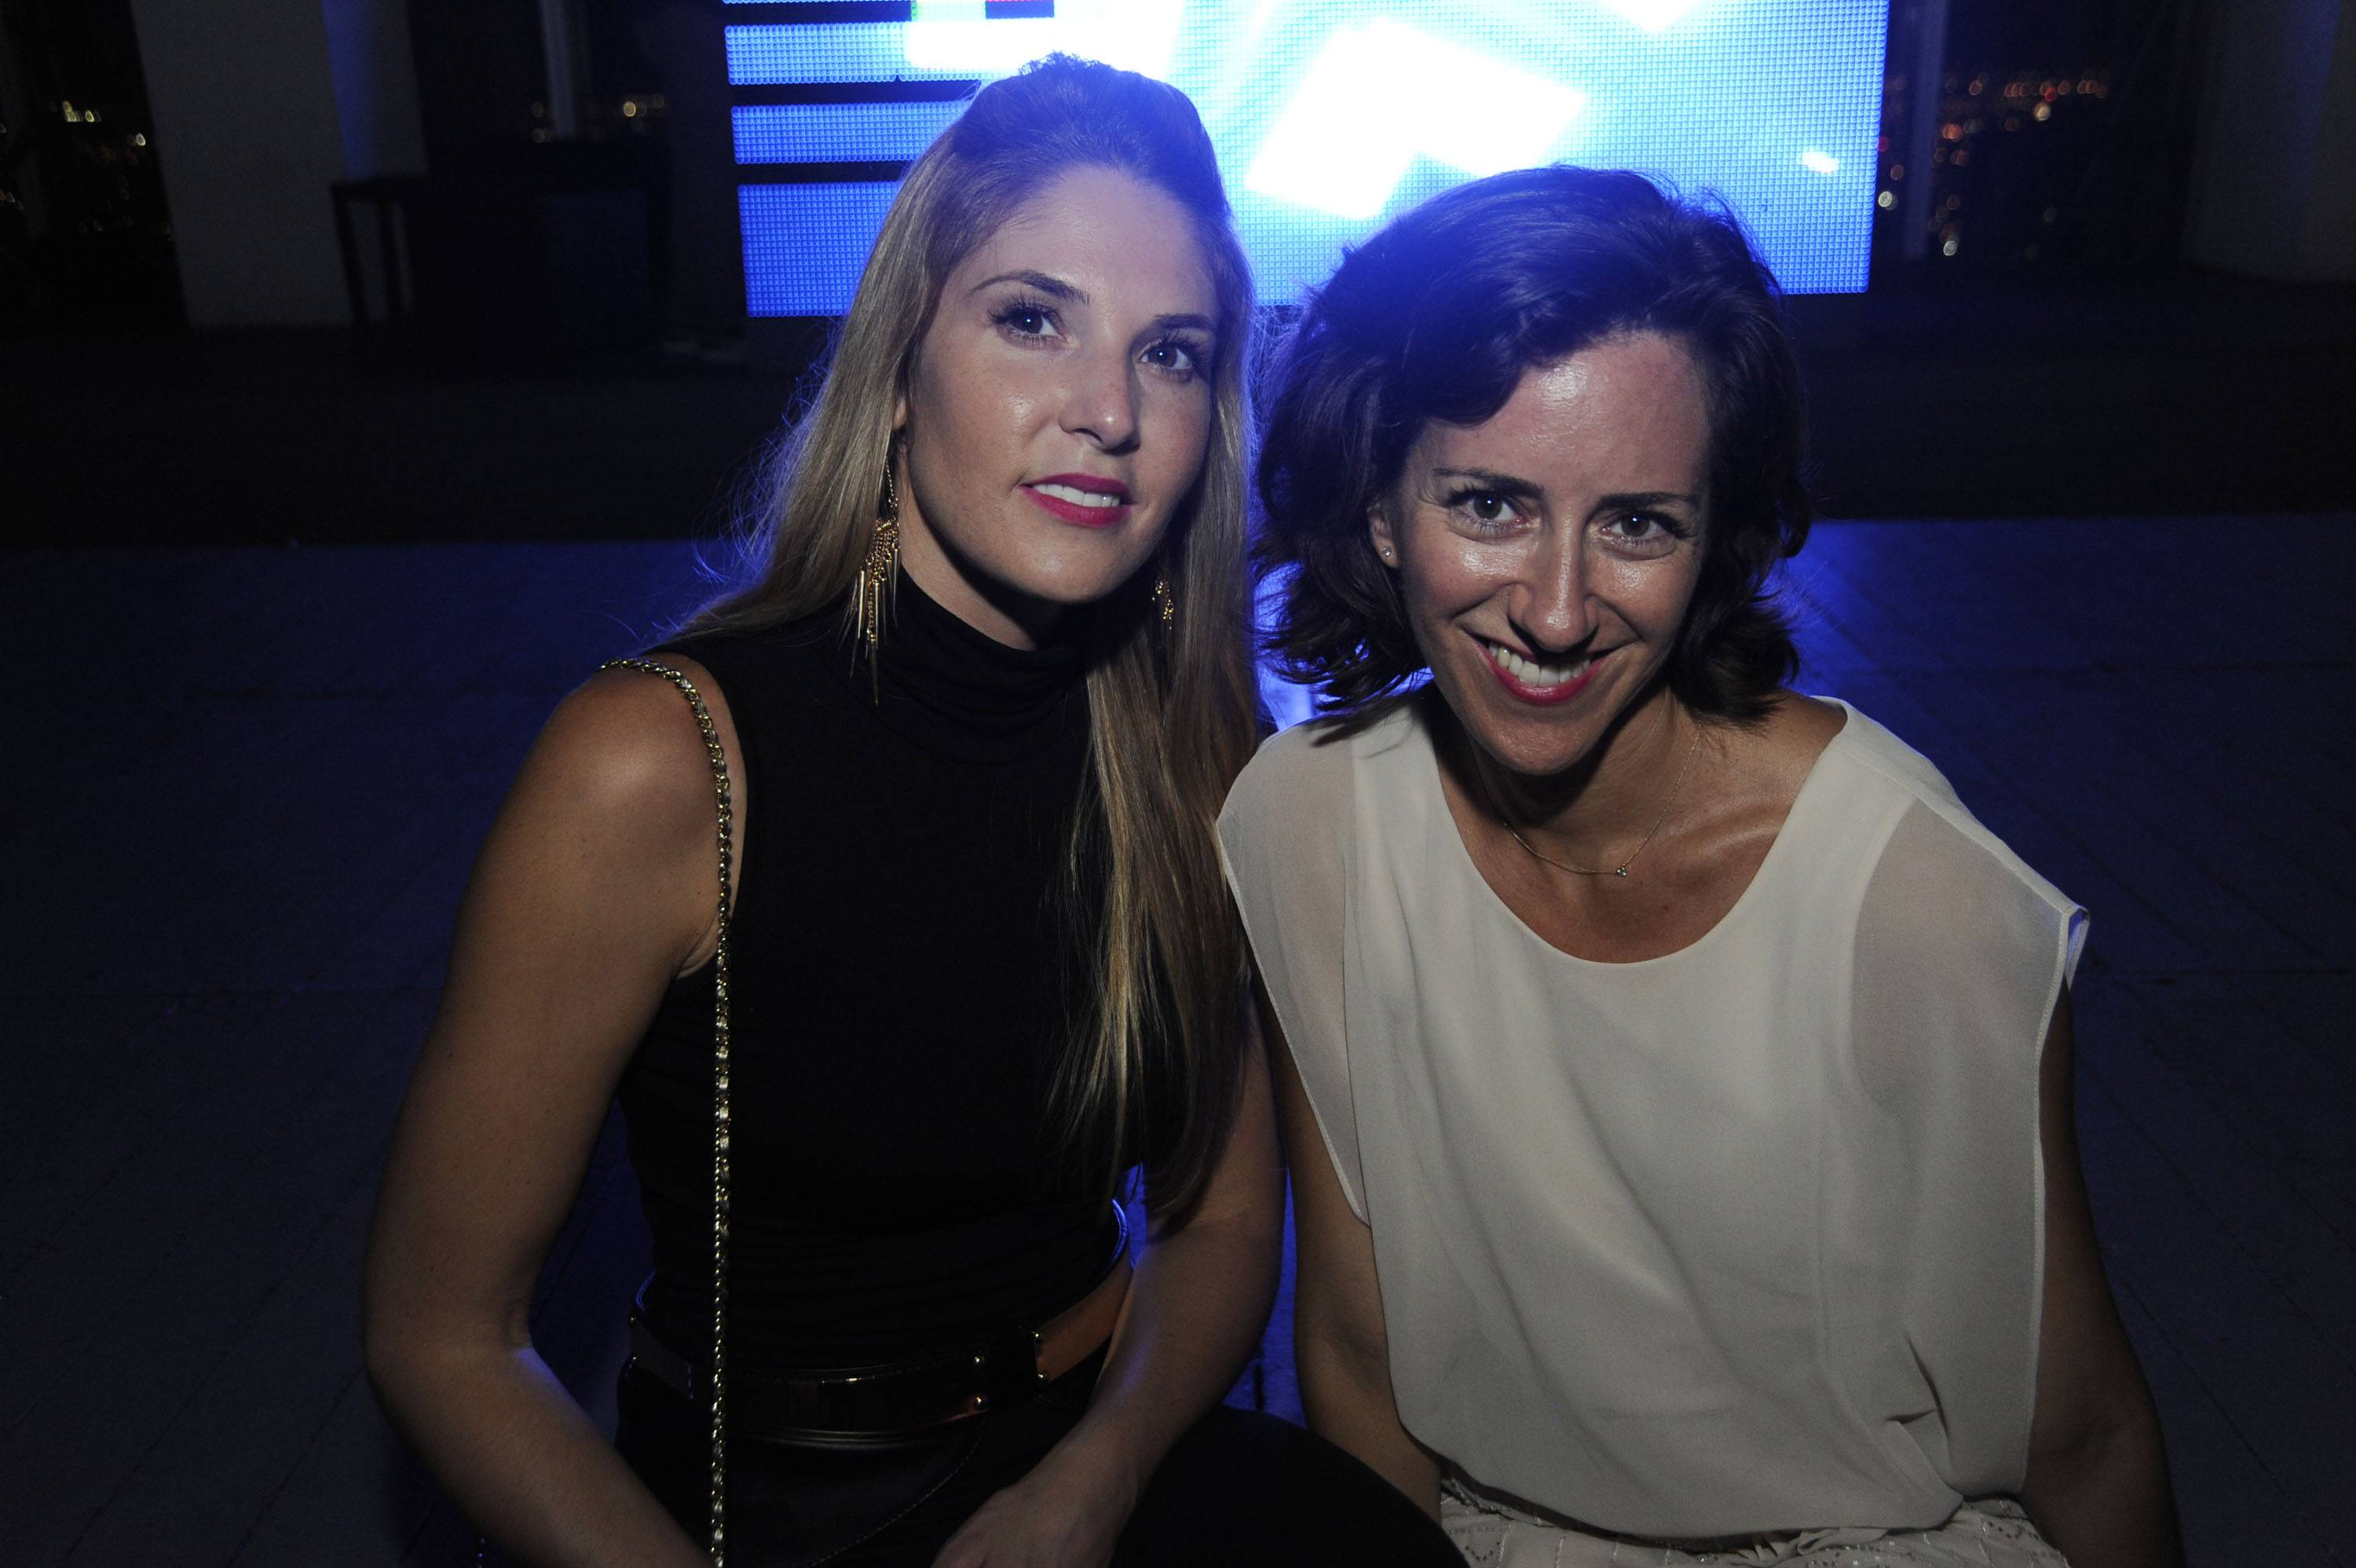 Jillian Posner, Chairman of the Green Room Society & Eva Silverstein, Director of Advancement, at the Green Room Society's season kick-off event